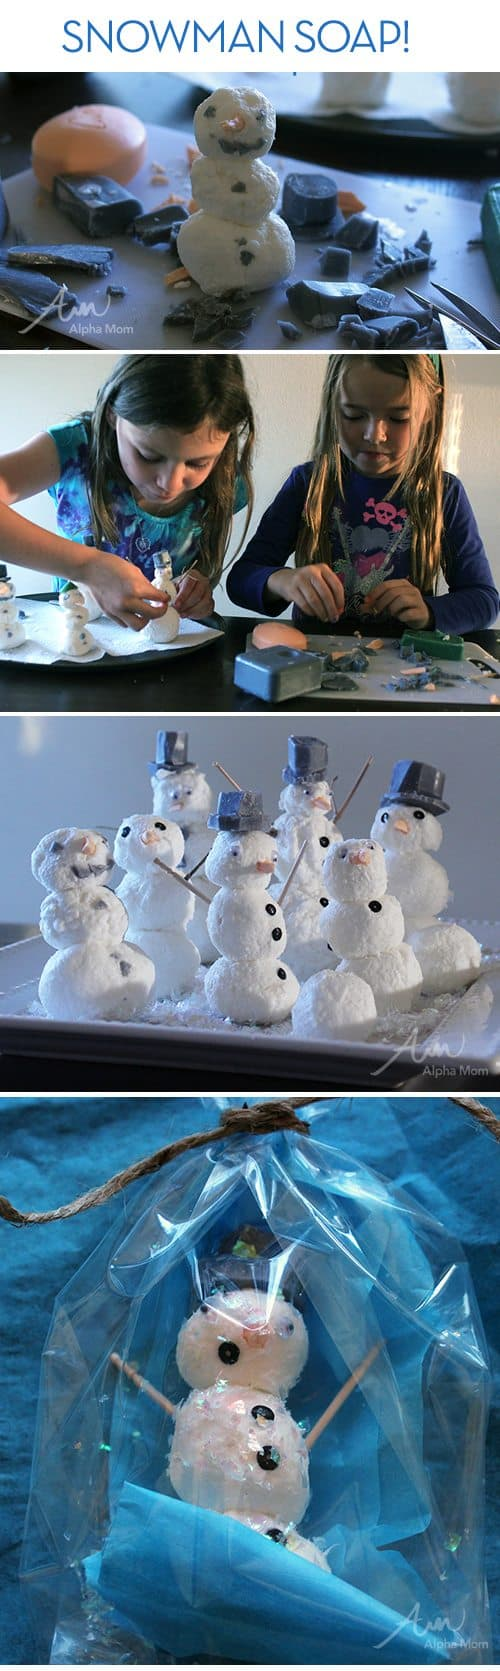 Snowman Soap DIY by Brenda Ponnay for @Alphamom